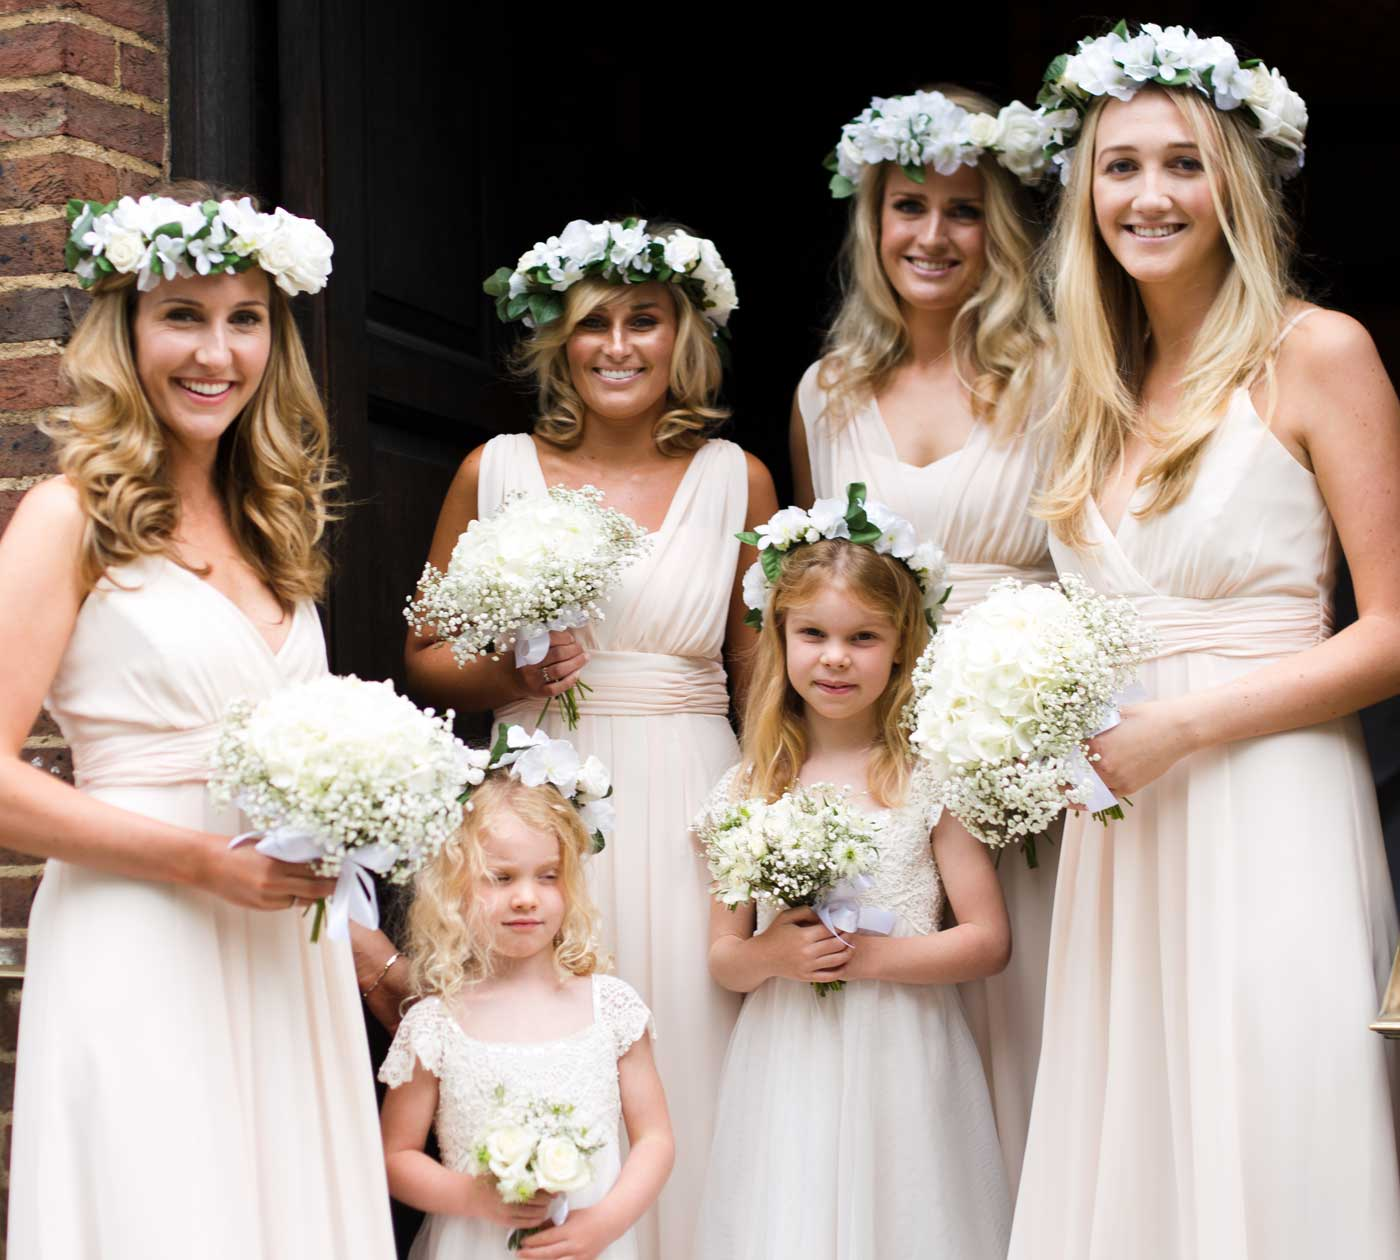 Bridesmaids in flower crowns